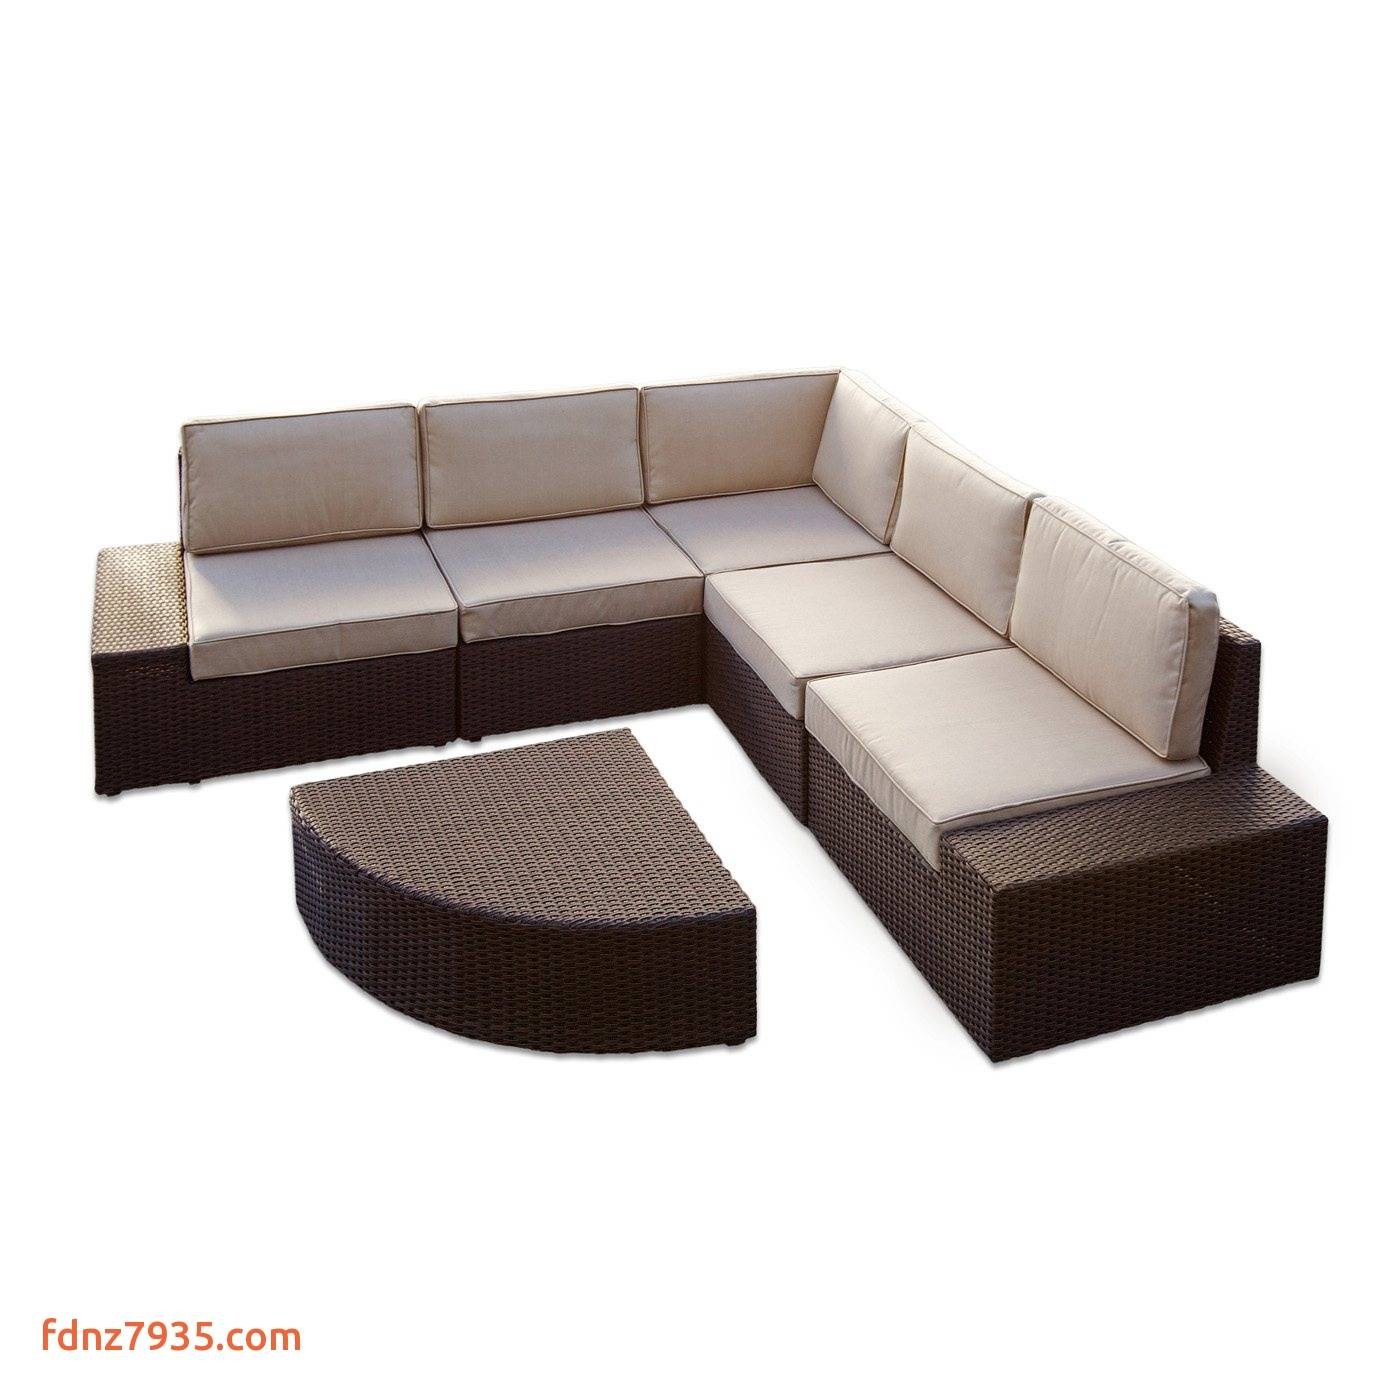 wicker sofa set appealing outdoor couch sale 21 cushions awesome wicker sofa 0d of wicker sofa set